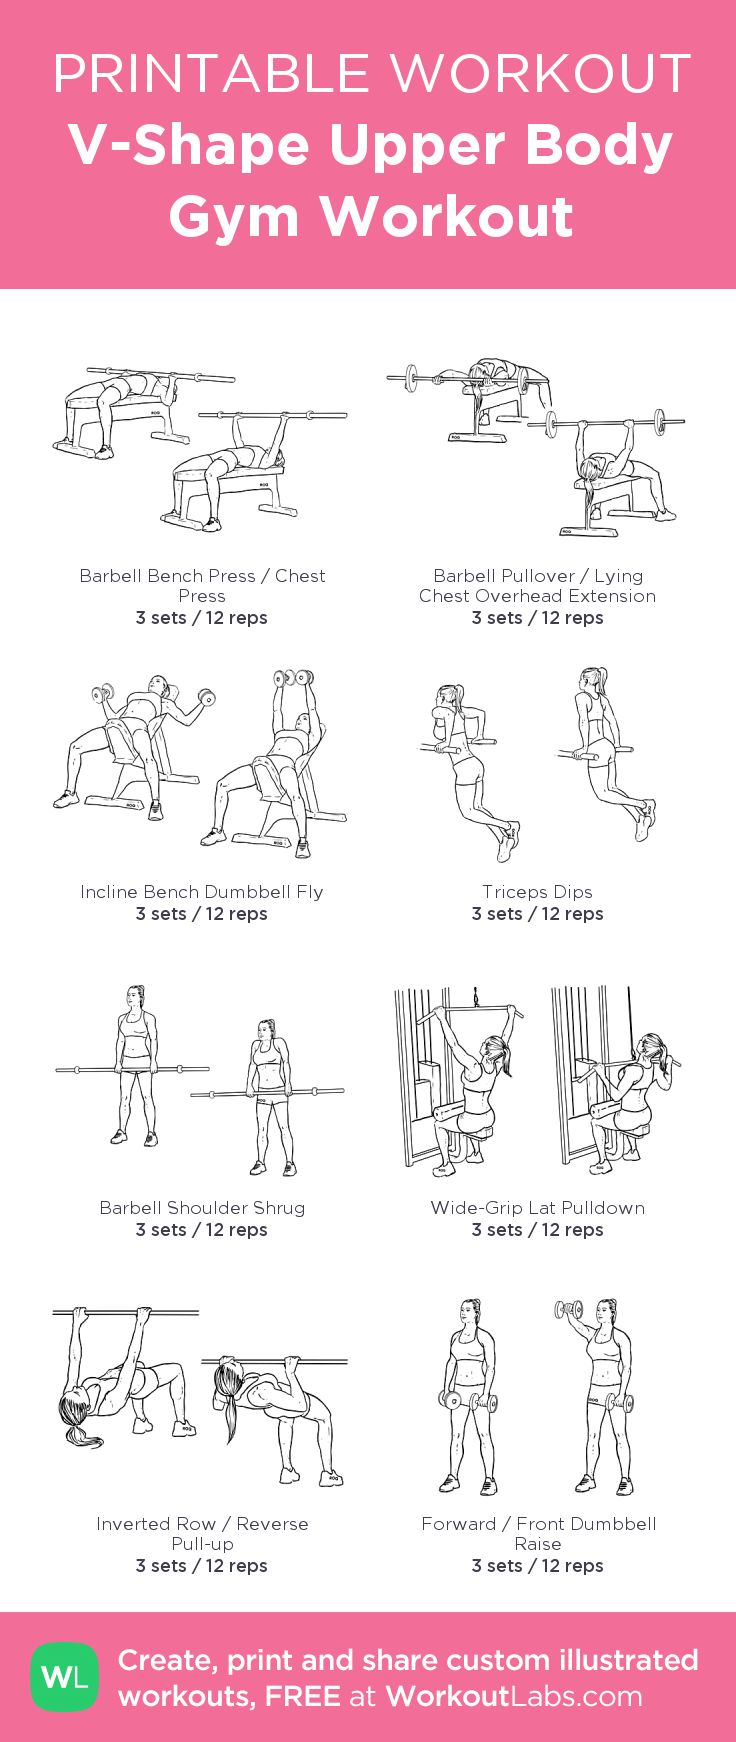 It is an image of Lucrative Printable Gym Workouts